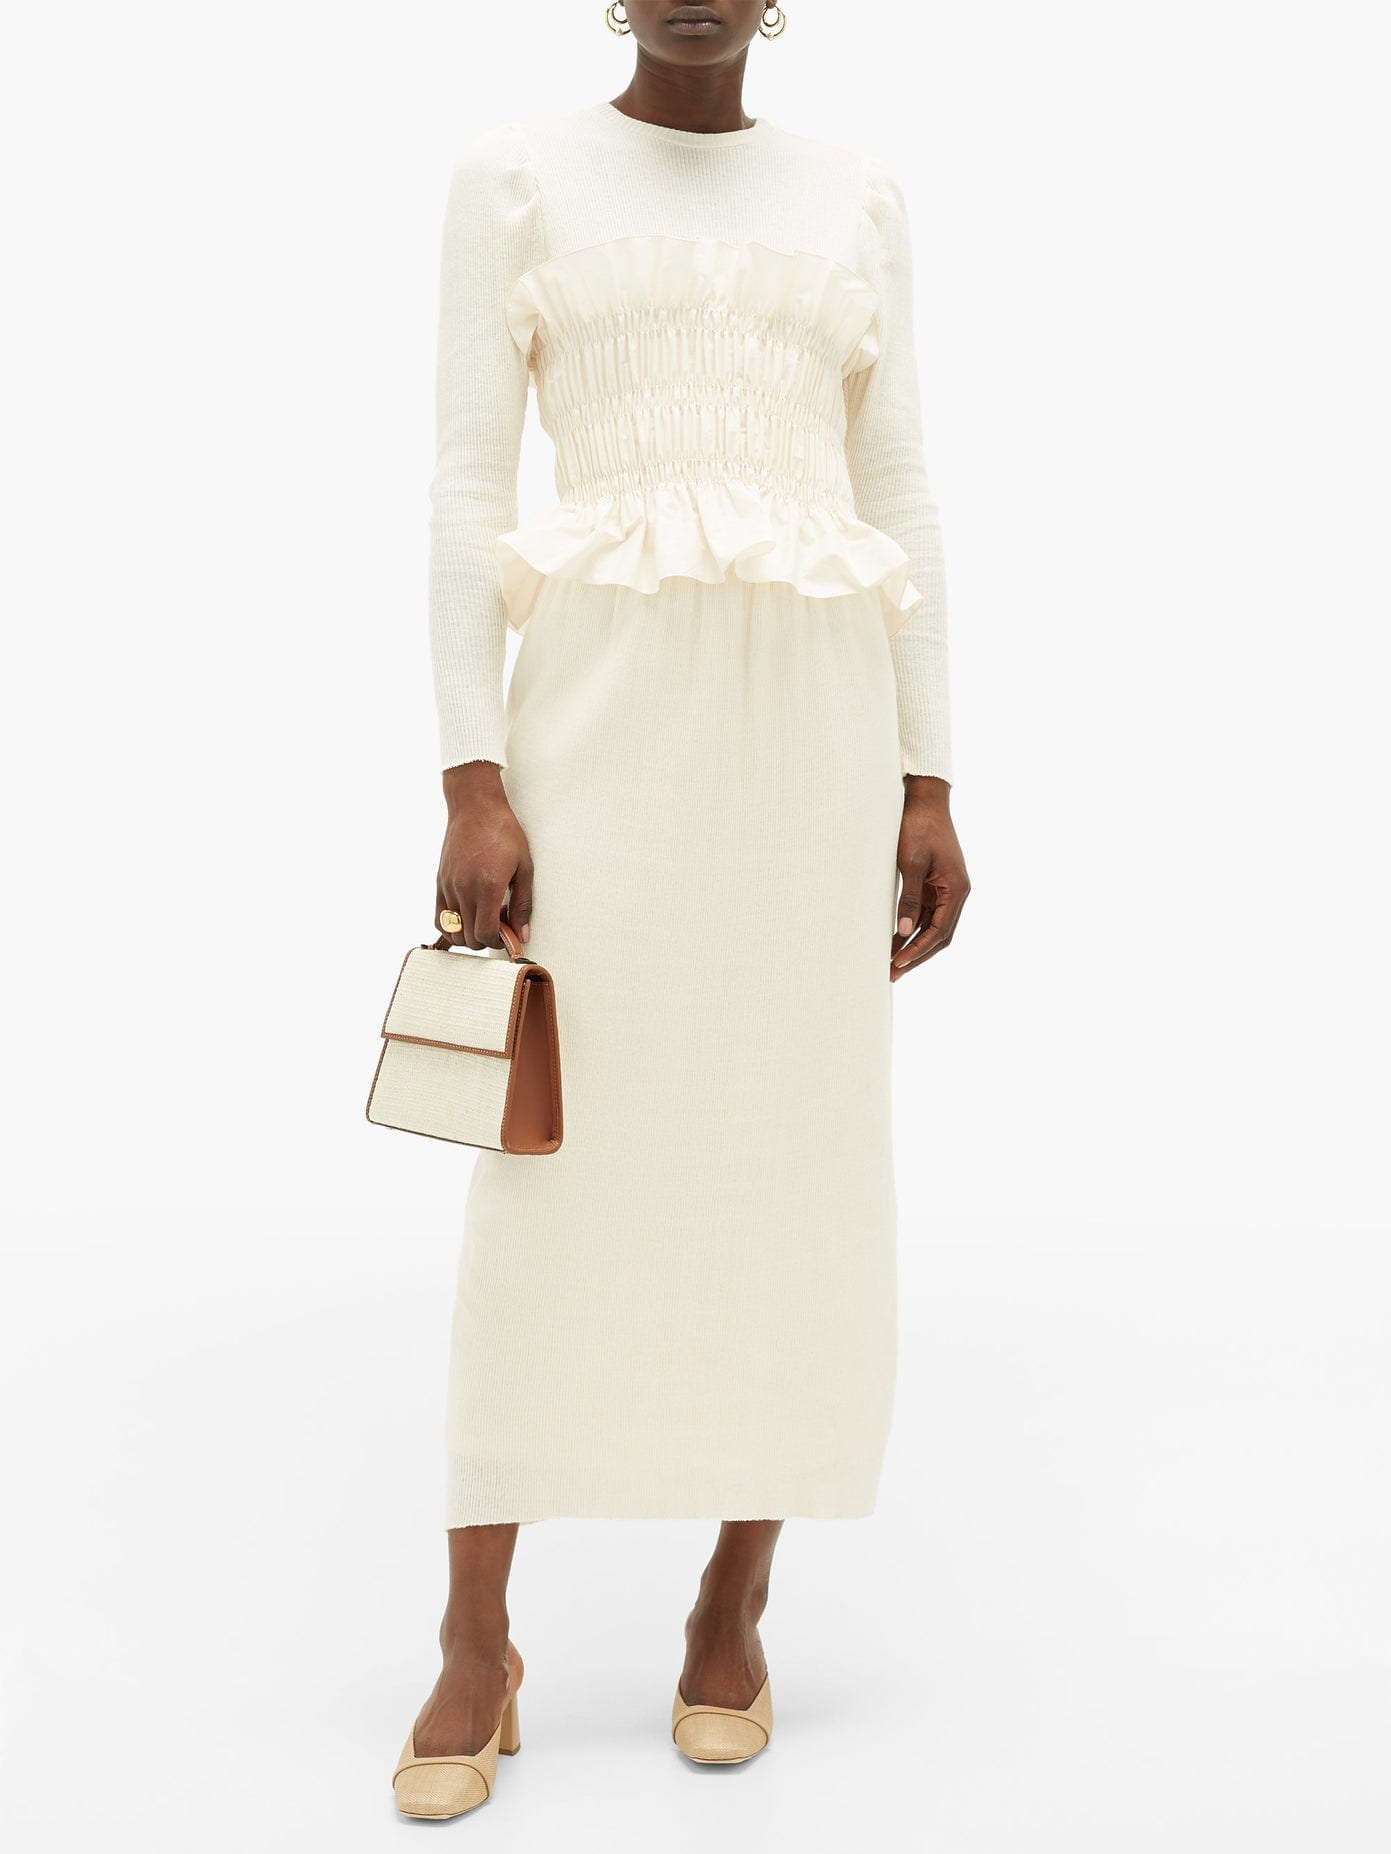 JOHANNA ORTIZ Enlightened Moments Knitted Cotton Dress